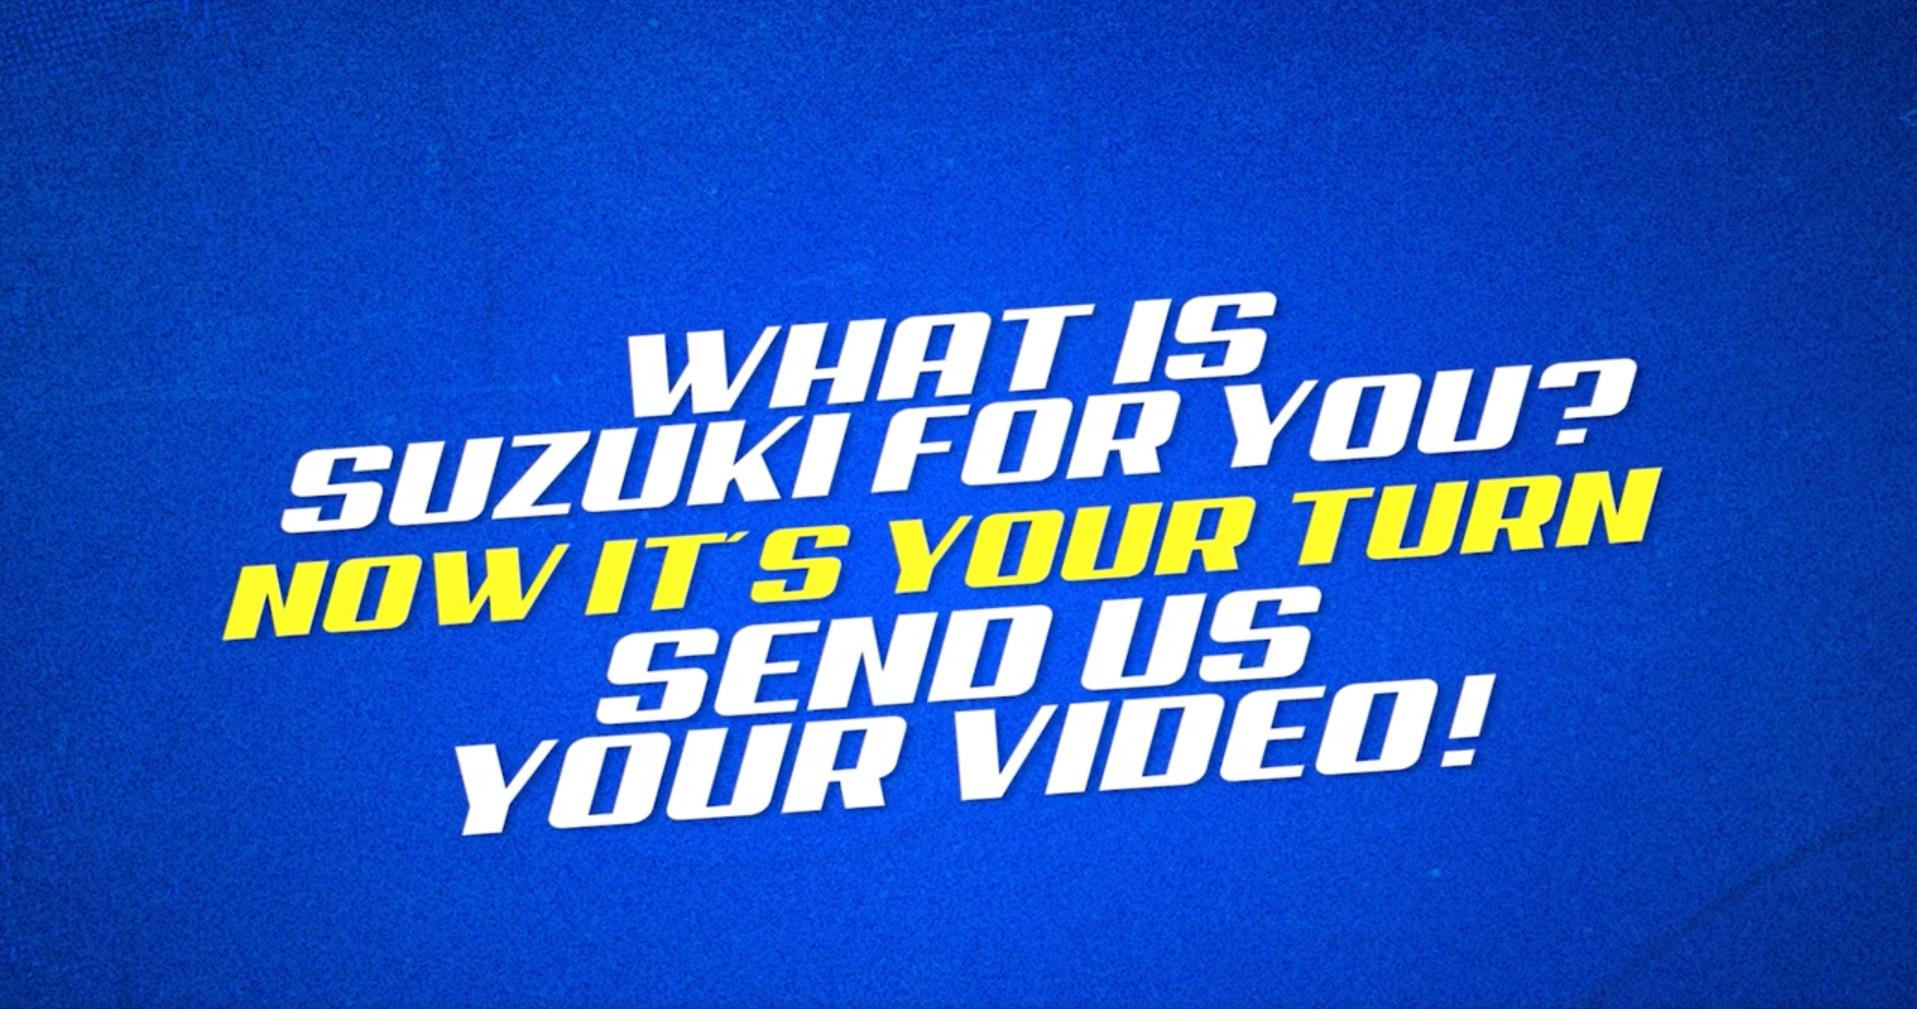 What Is Suzuki For You Video Online